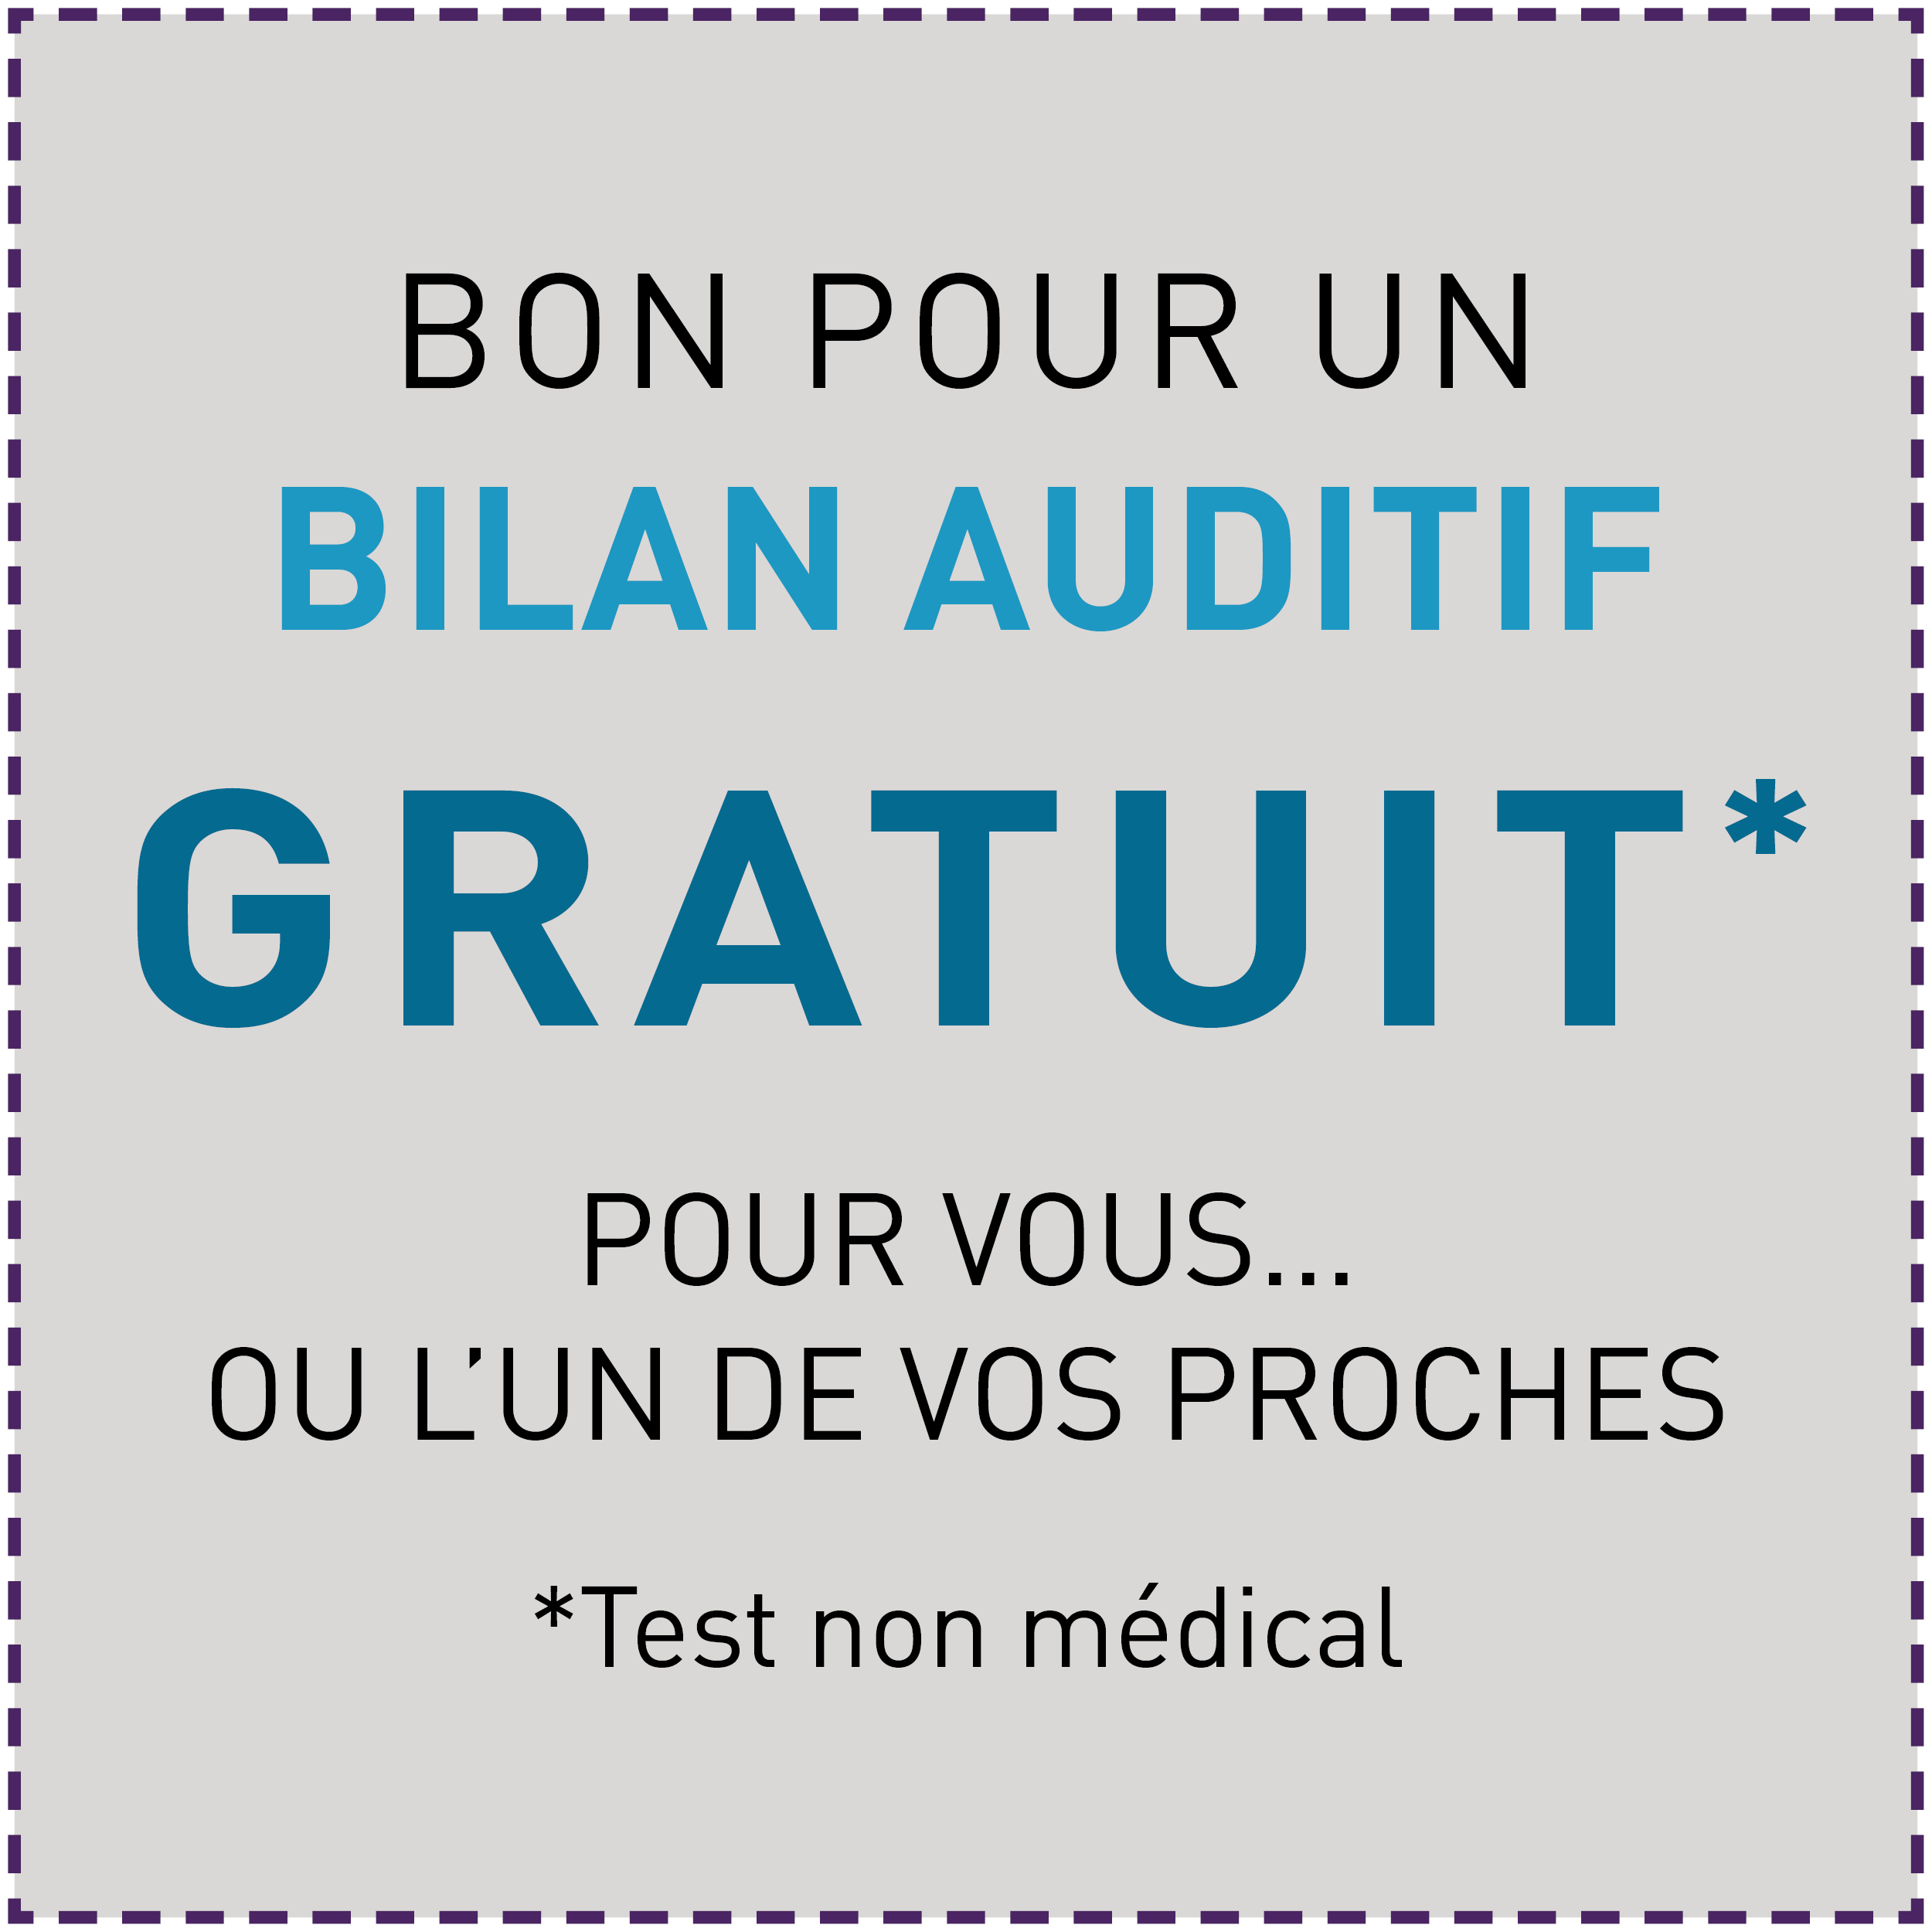 Offre_Octobre_bon pour un bilan auditif gratuit Audio audiens test auditif aides auditives rechargeables Audiens Saint Amant Tallende Audiens Rochefort Montagne